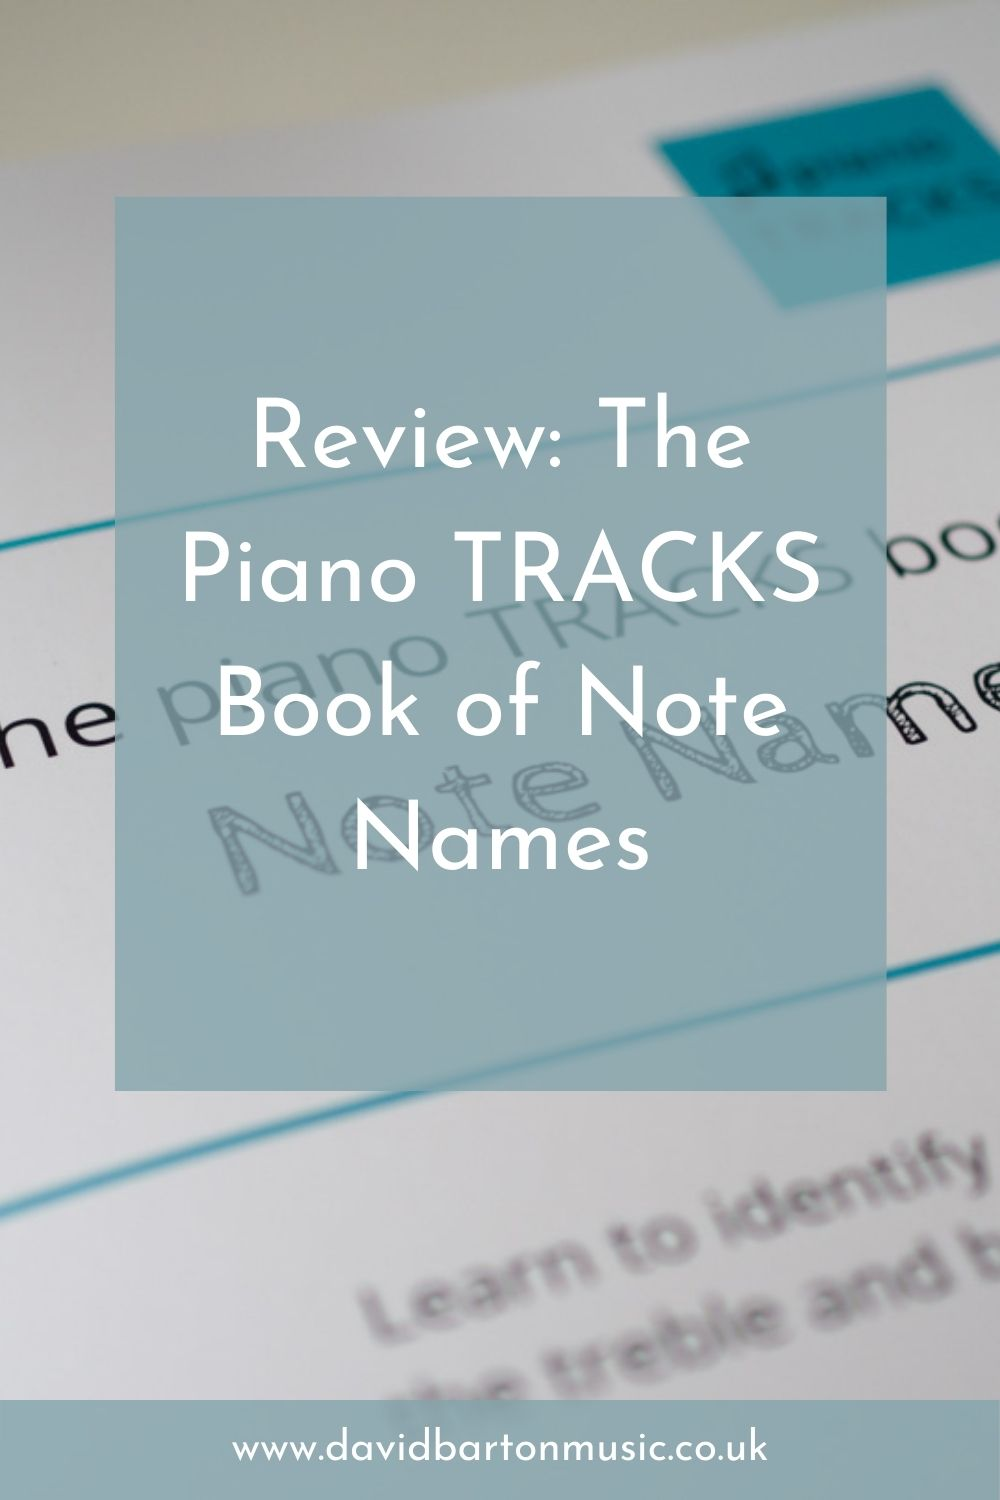 Review: The Piano TRACKS Book of Note Names - Pinterest Graphic